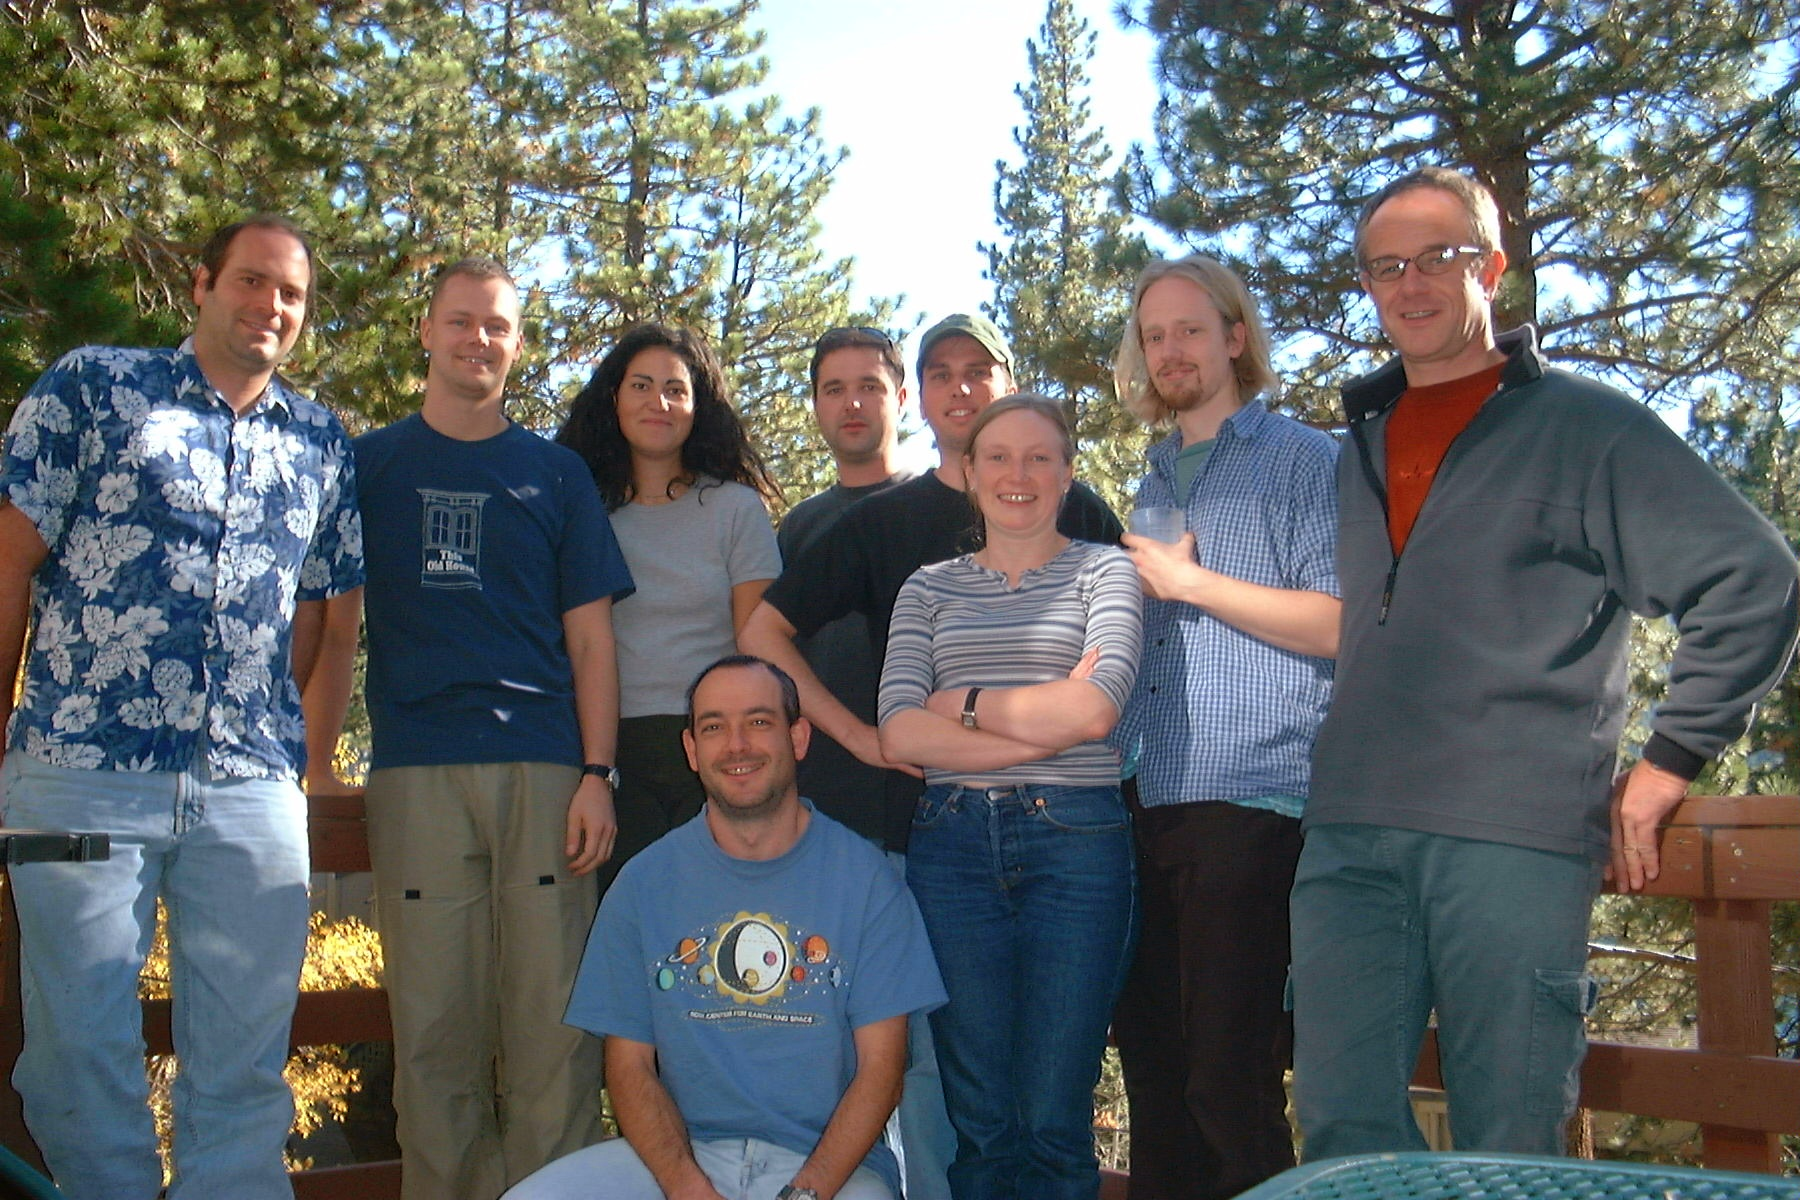 The Earliest Gladstone Group - Summer 2001